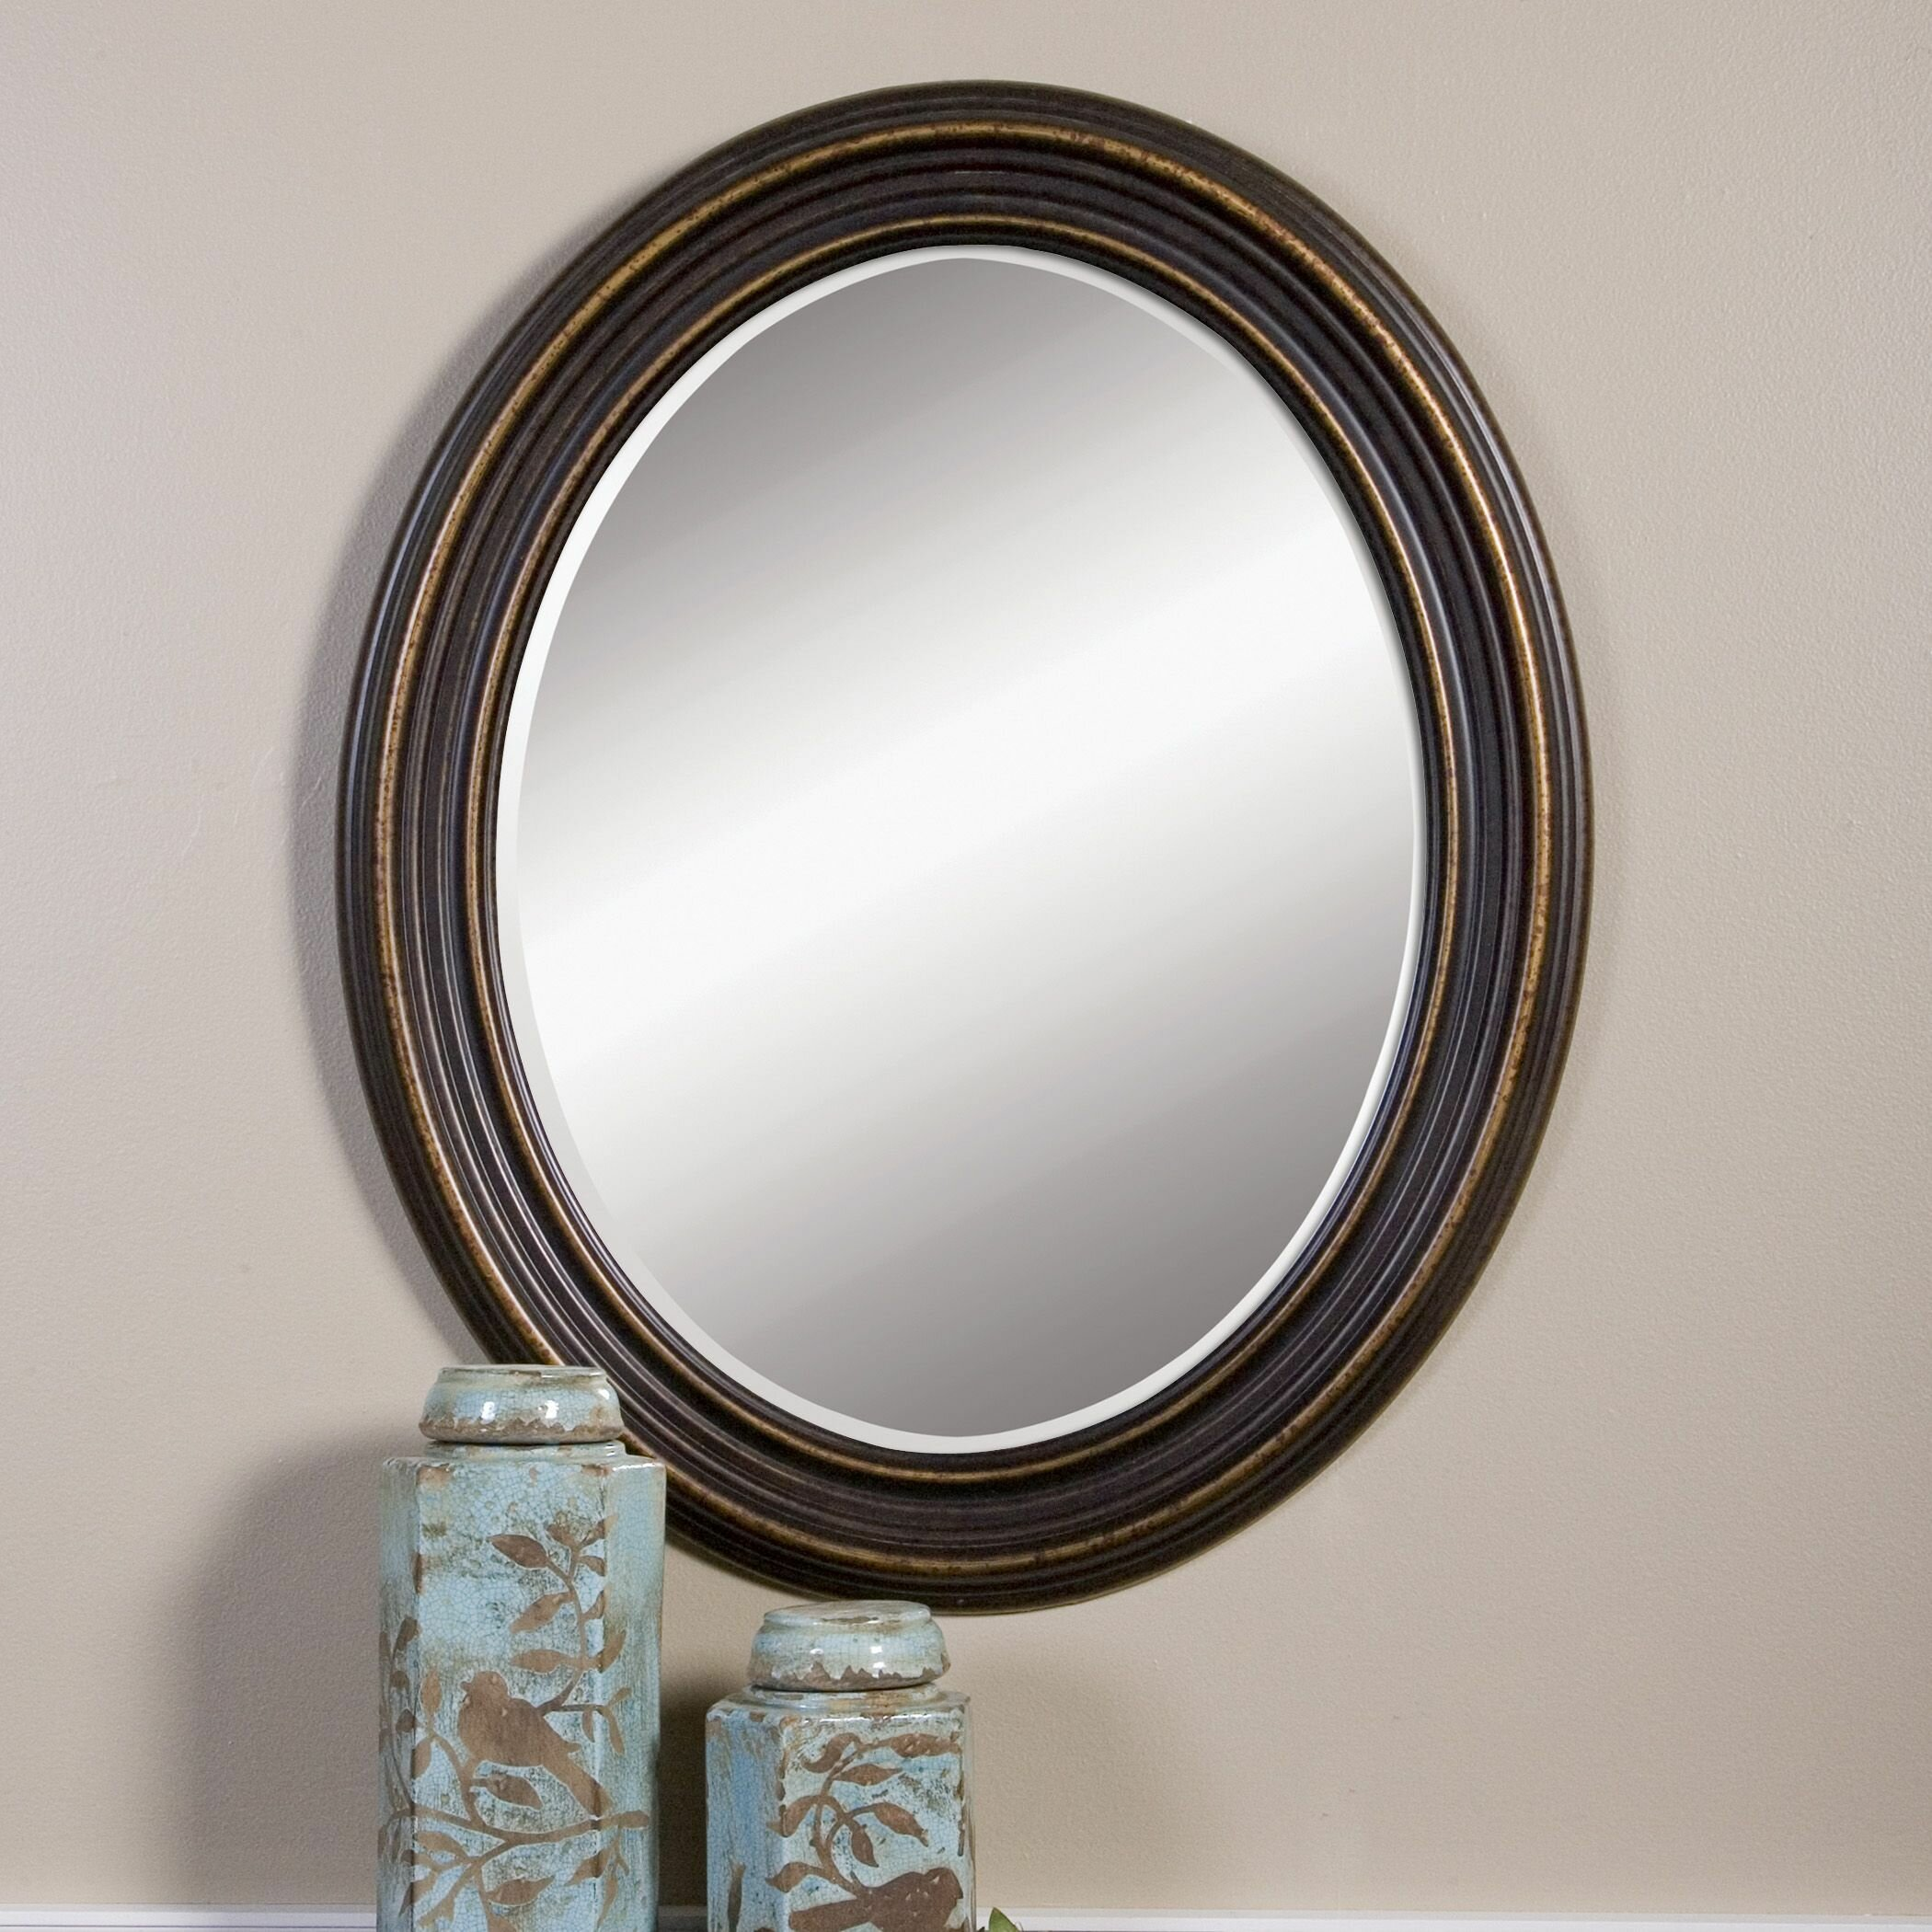 Darby Home Co Burnes Oval Wall Mirror Reviews Wayfair